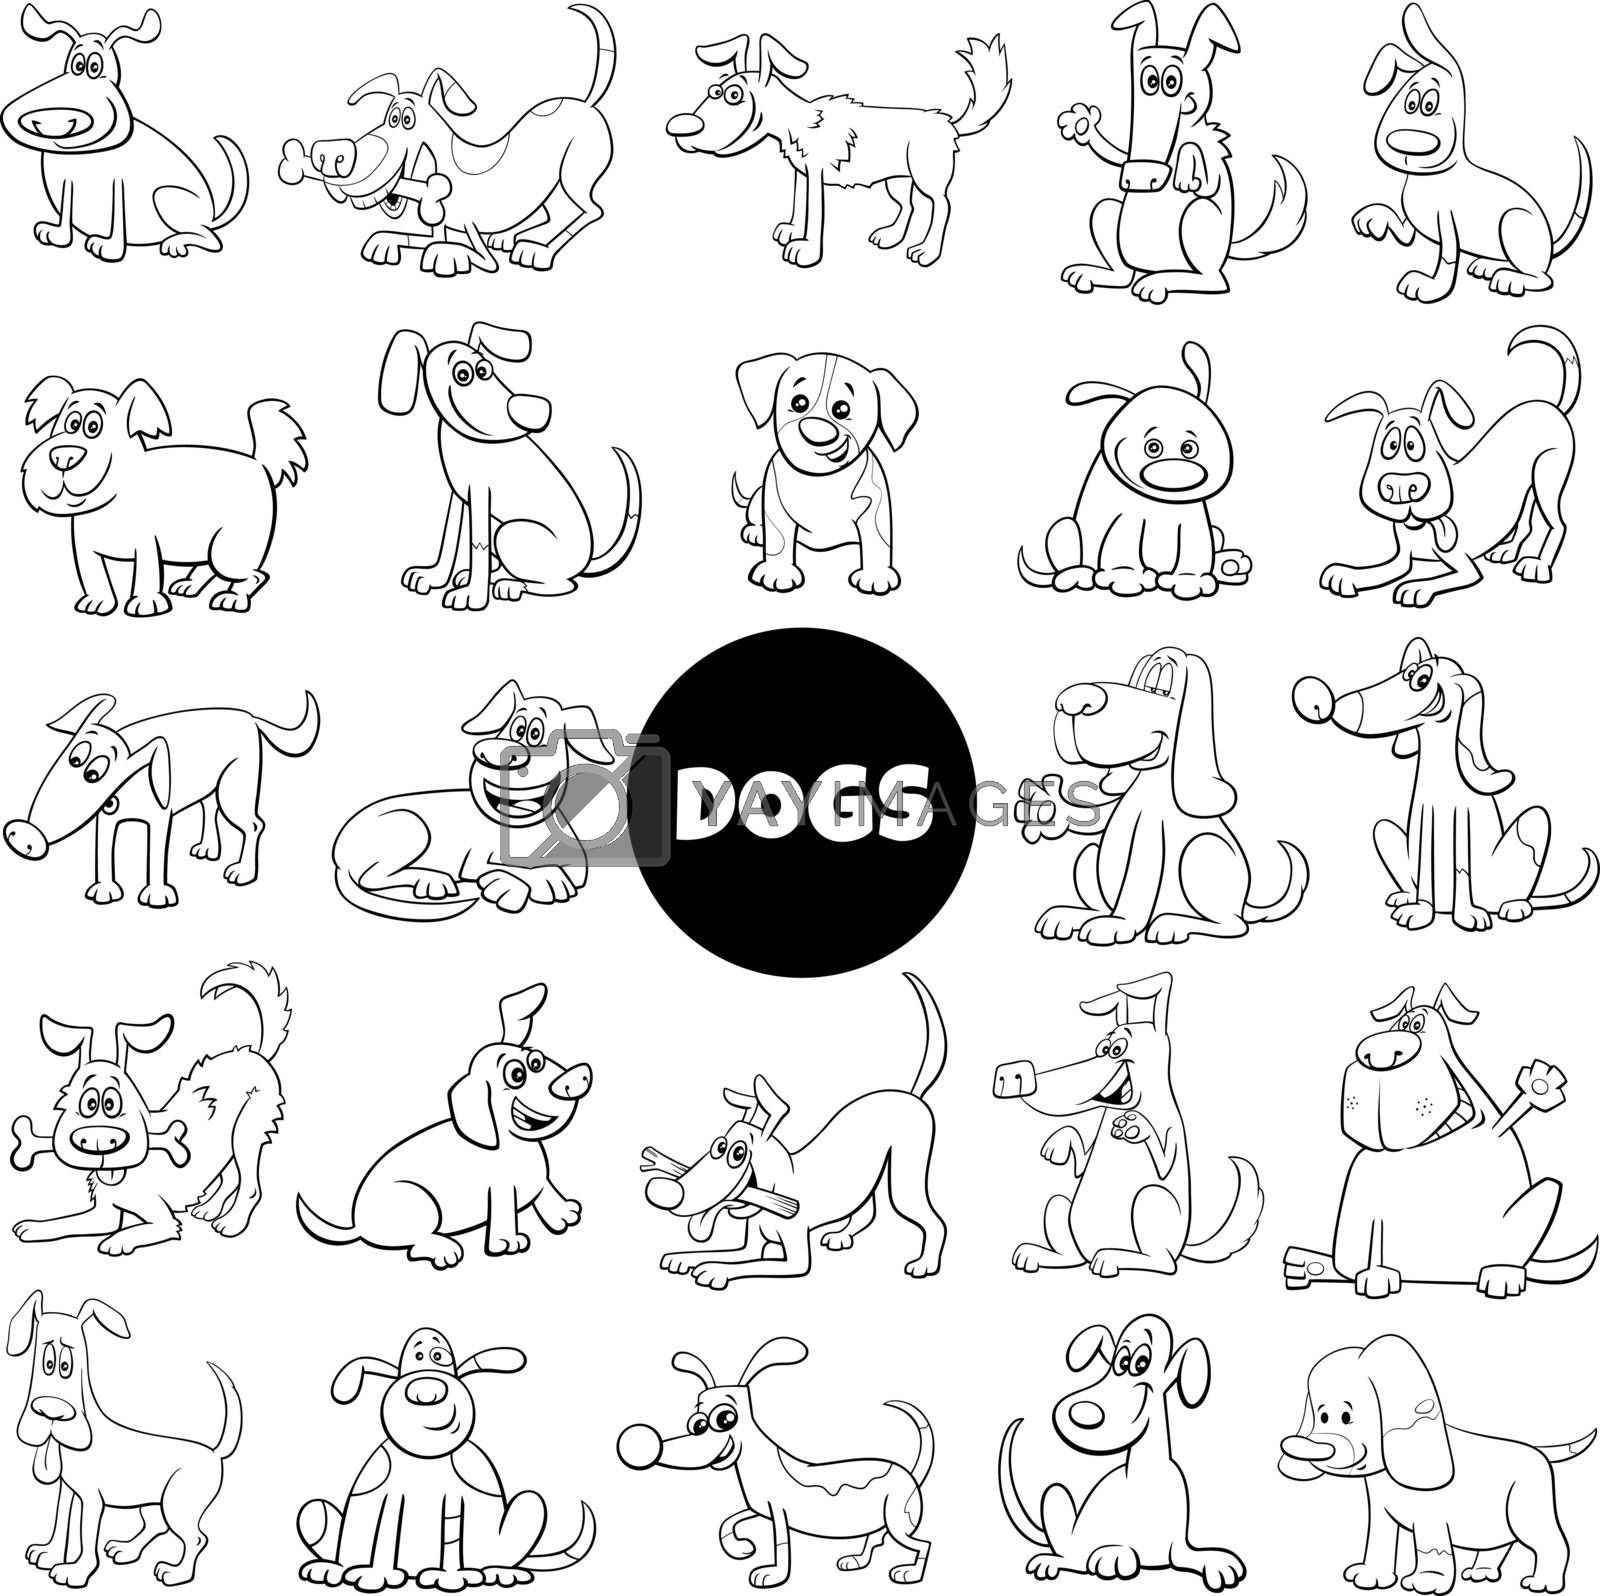 Black and White Cartoon Illustration of Dogs and Puppies Pet Animal Characters Big Set